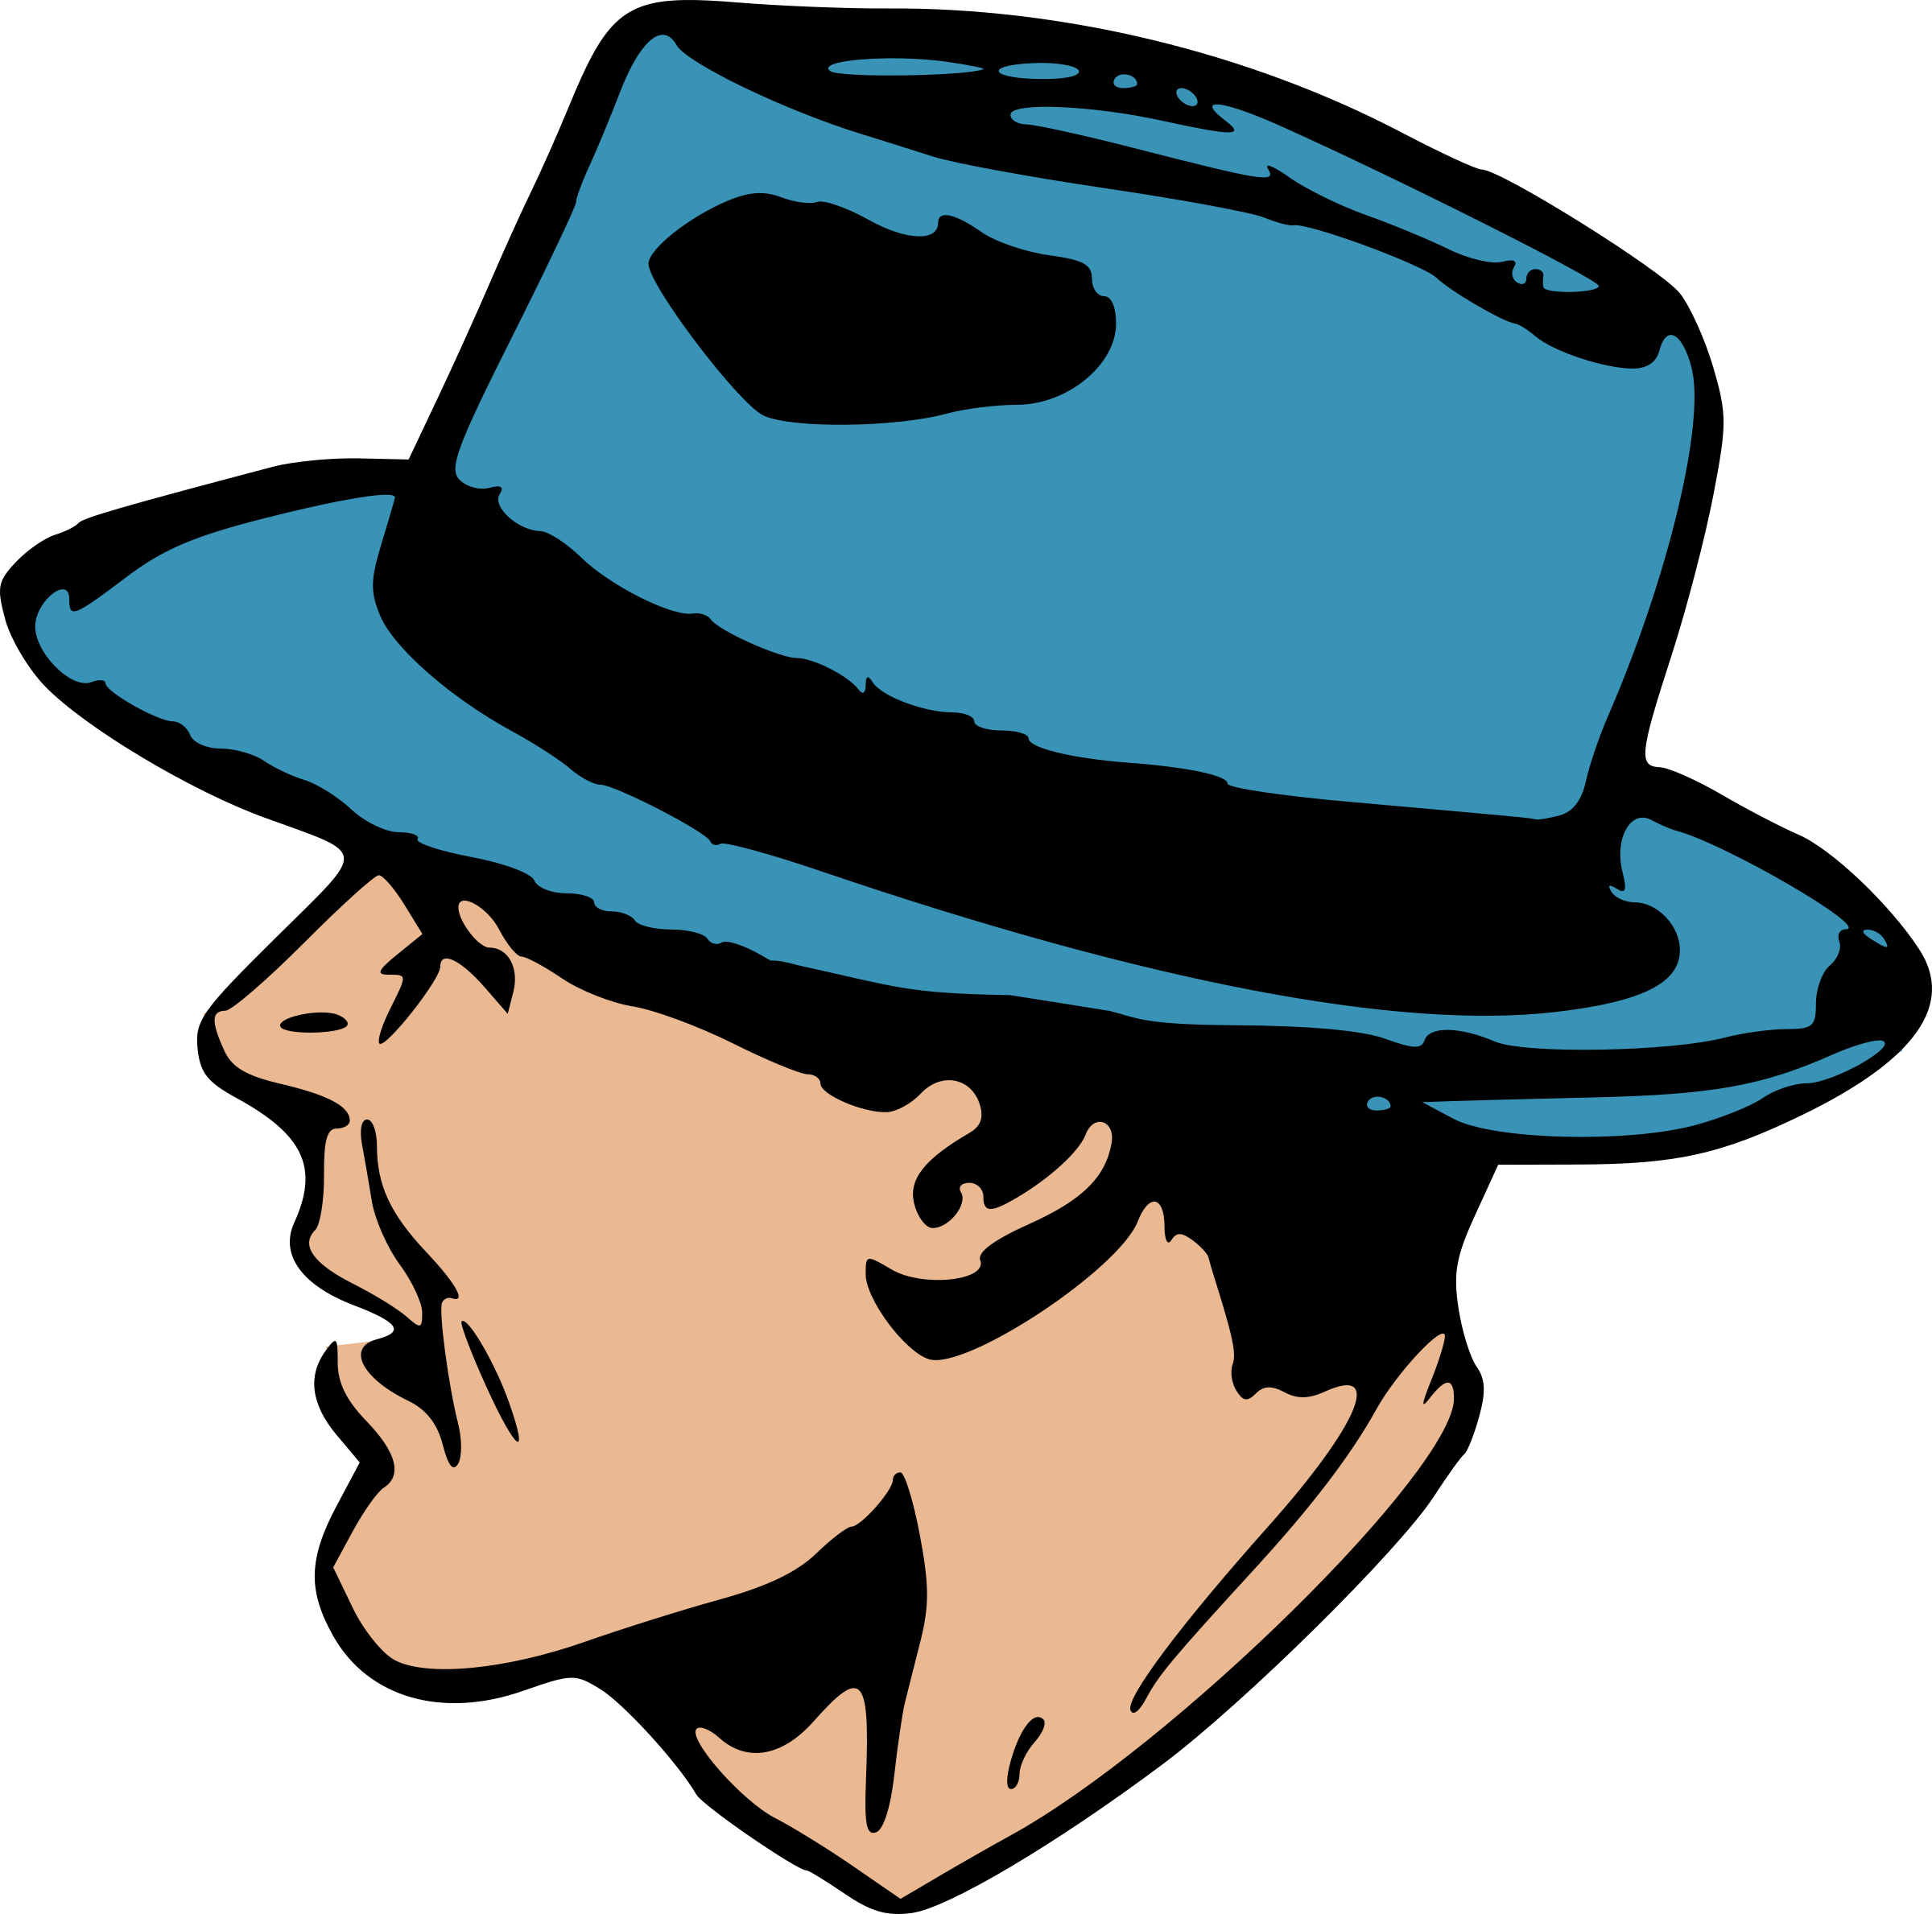 Man in blue hat by liftarn